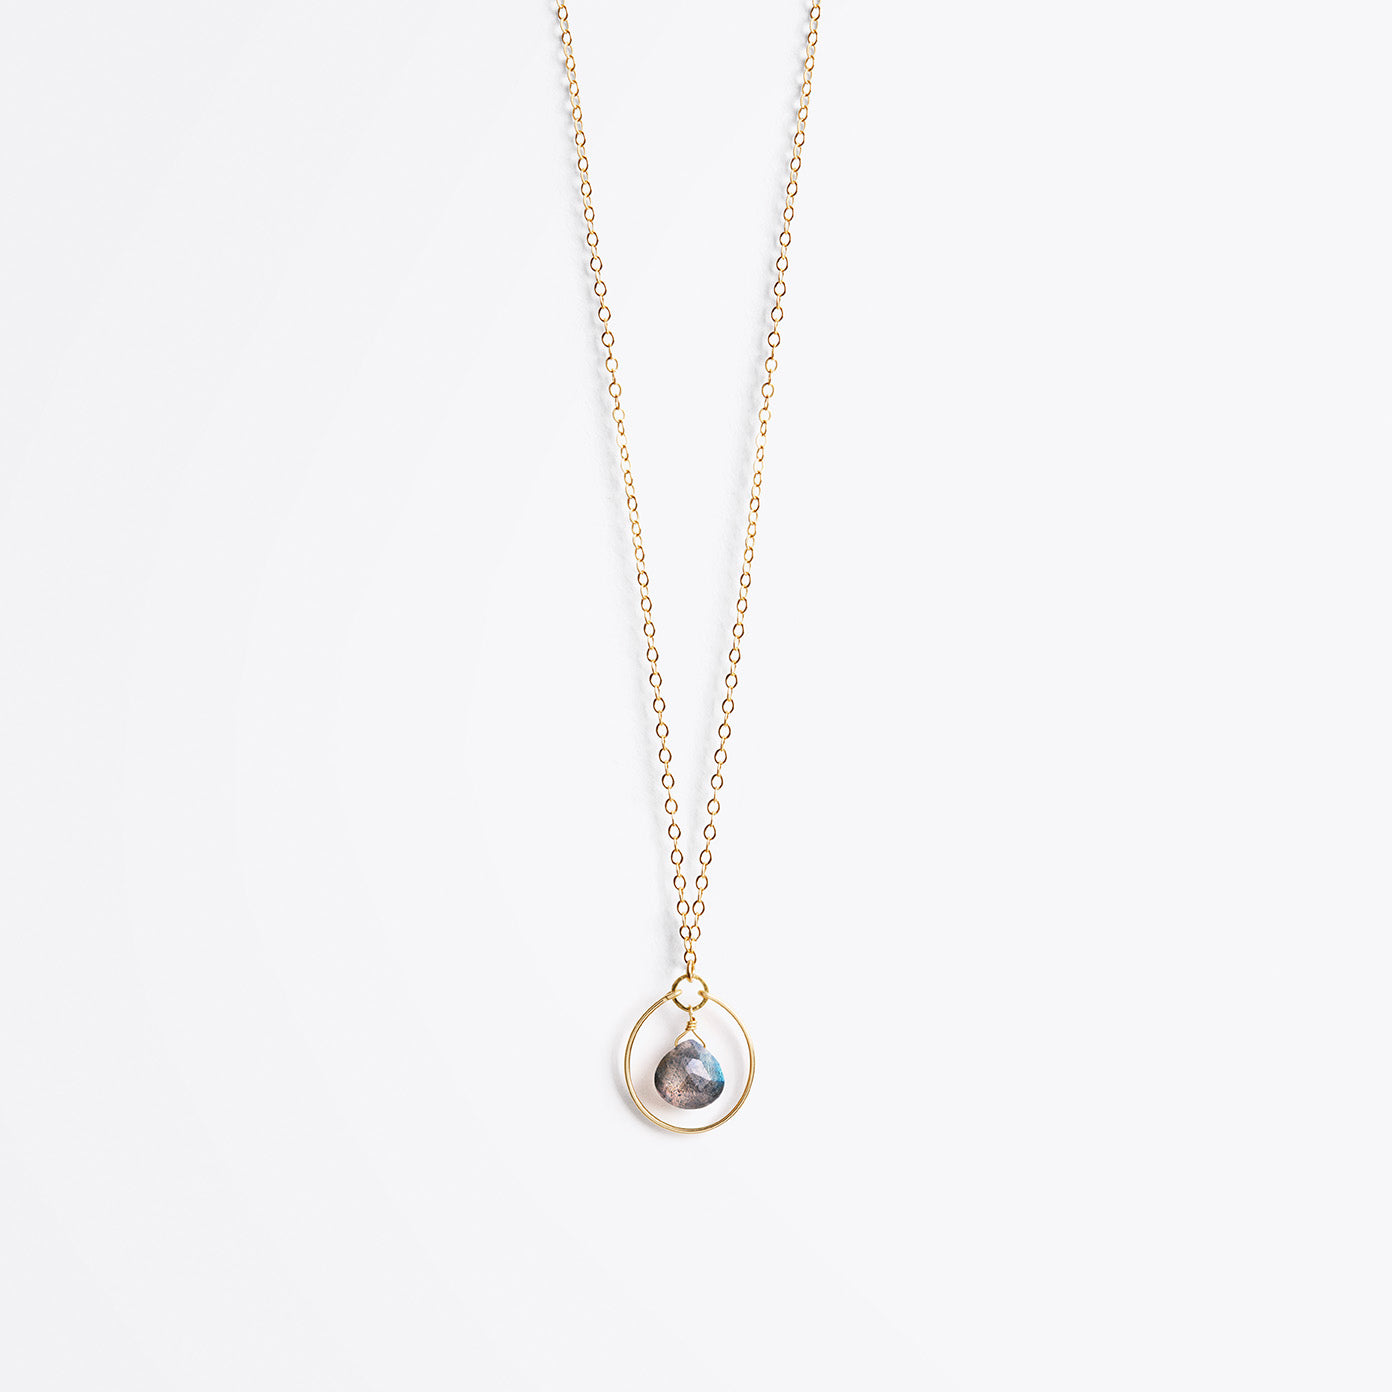 petite stella orb gold chain necklace | iridescent labradorite